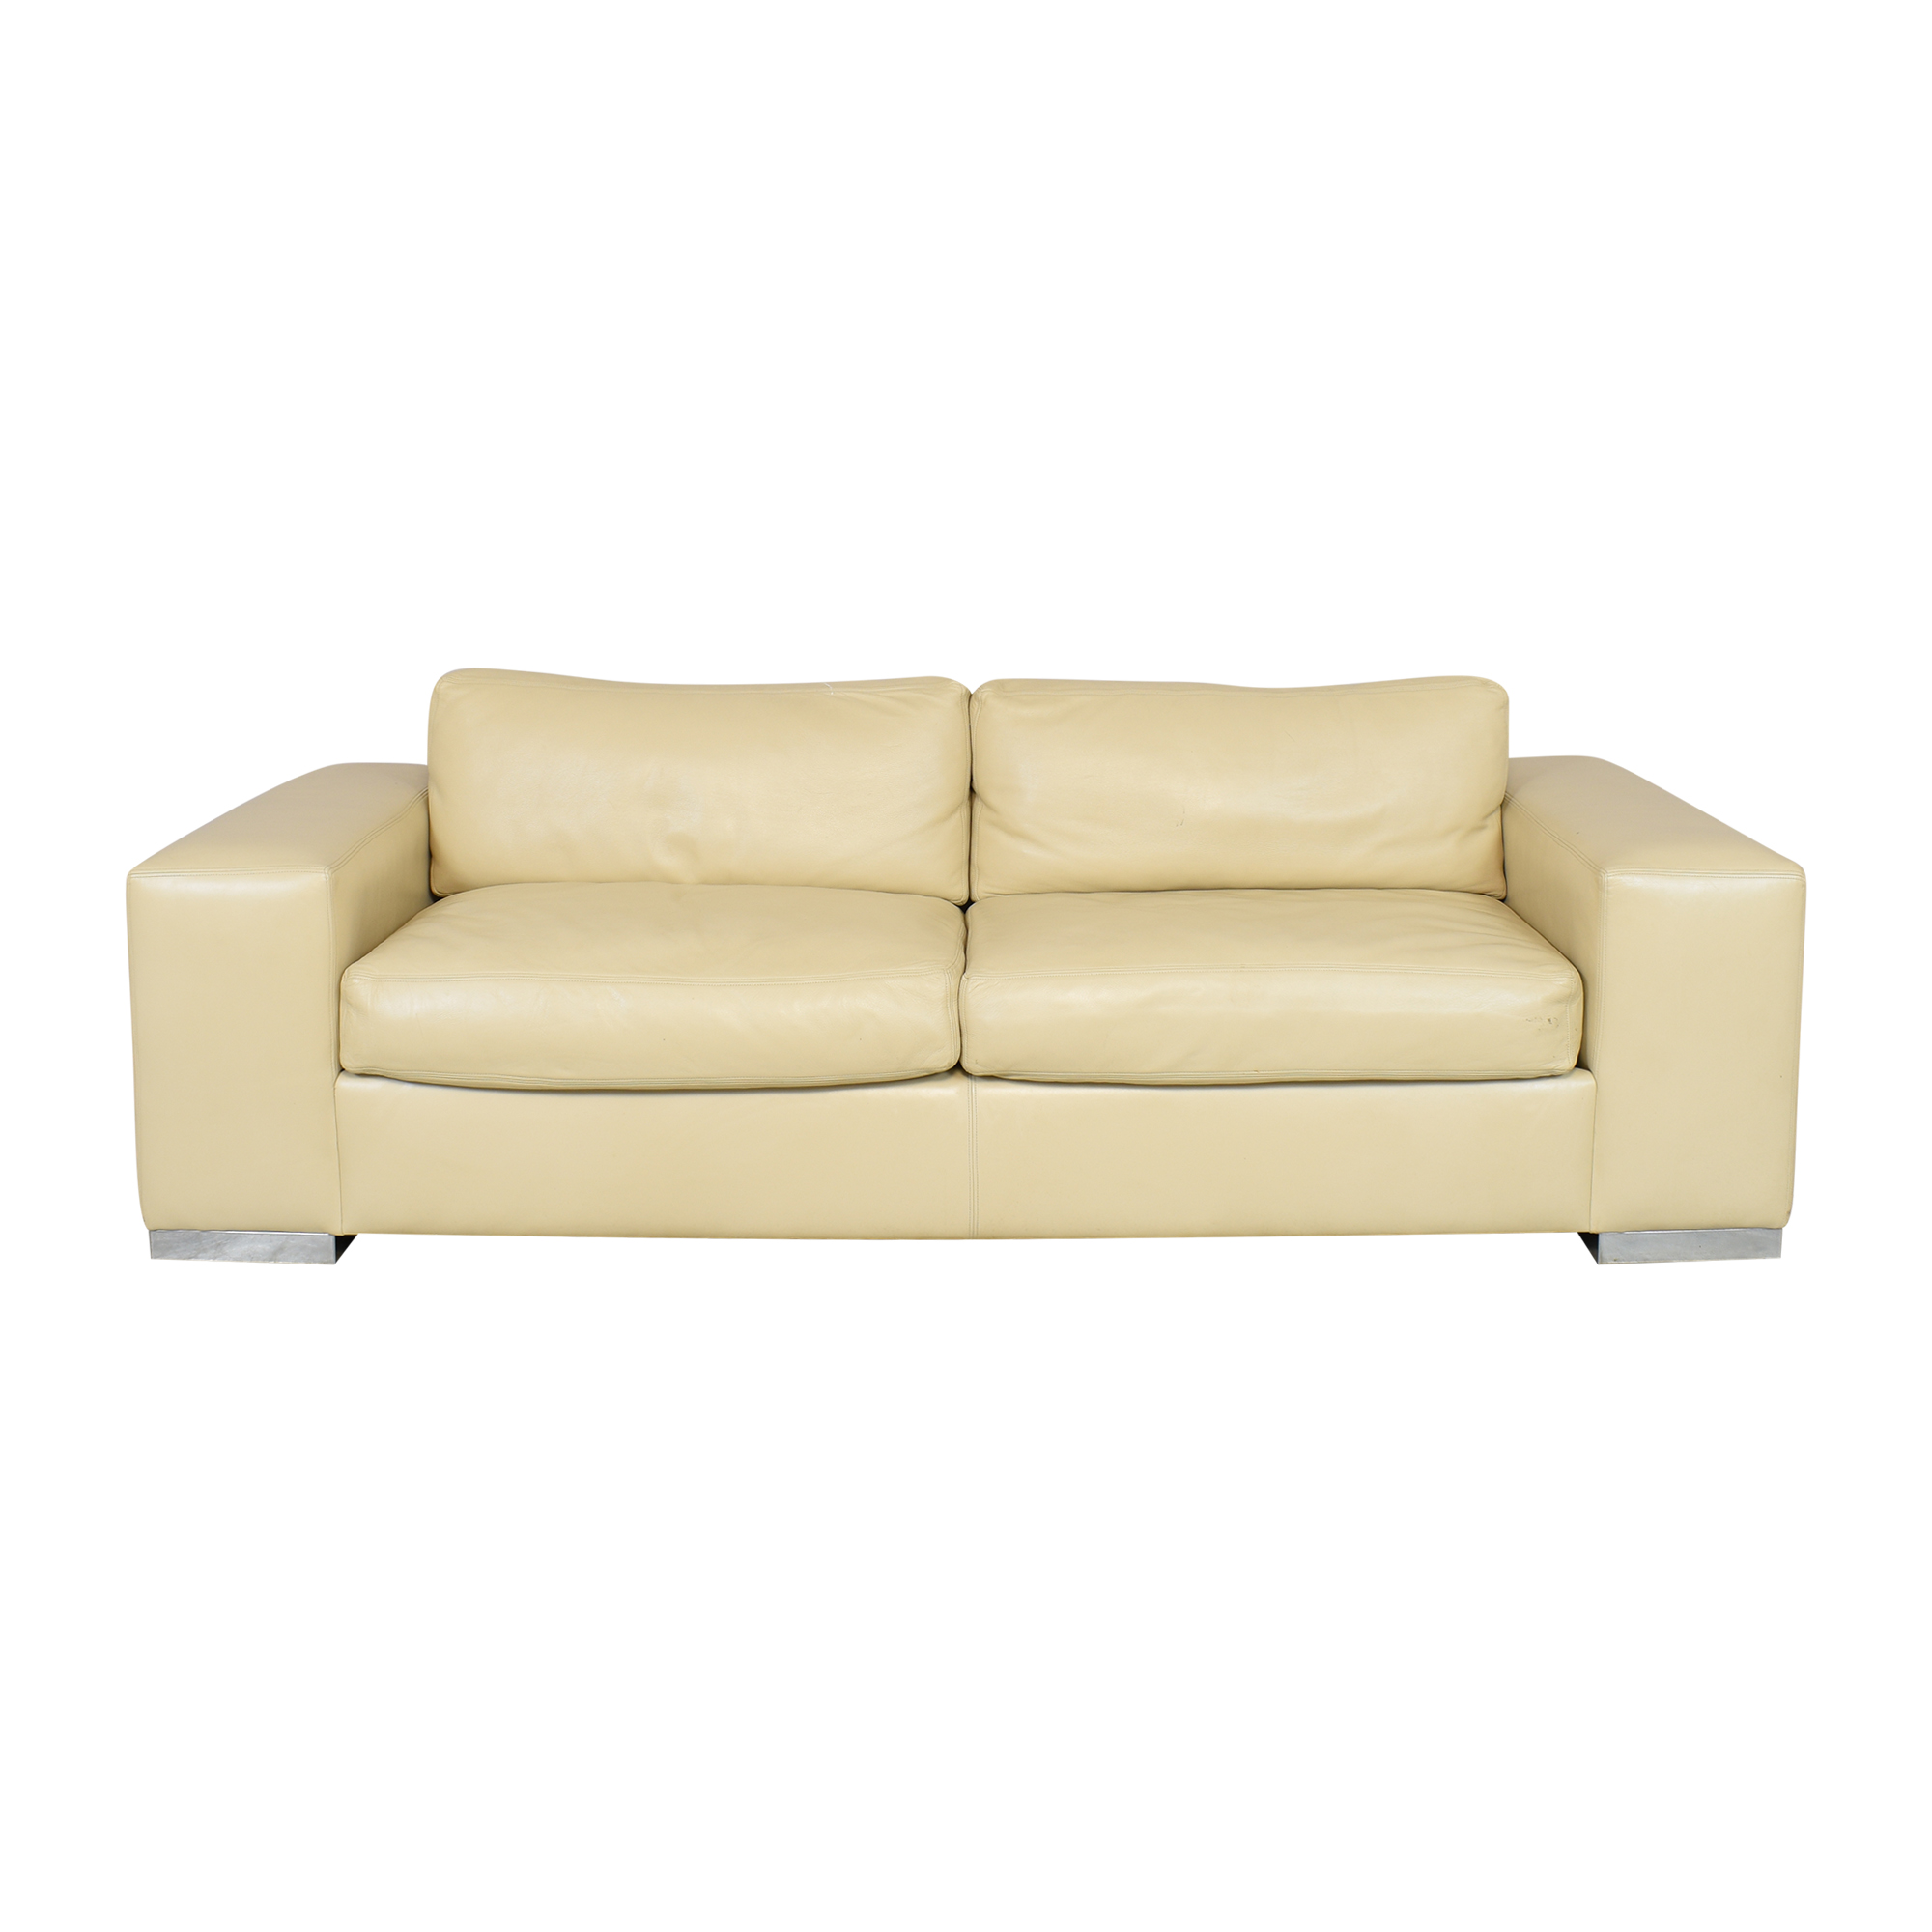 Environment Furniture Environment Furniture Safia Two Cushion Sofa coupon